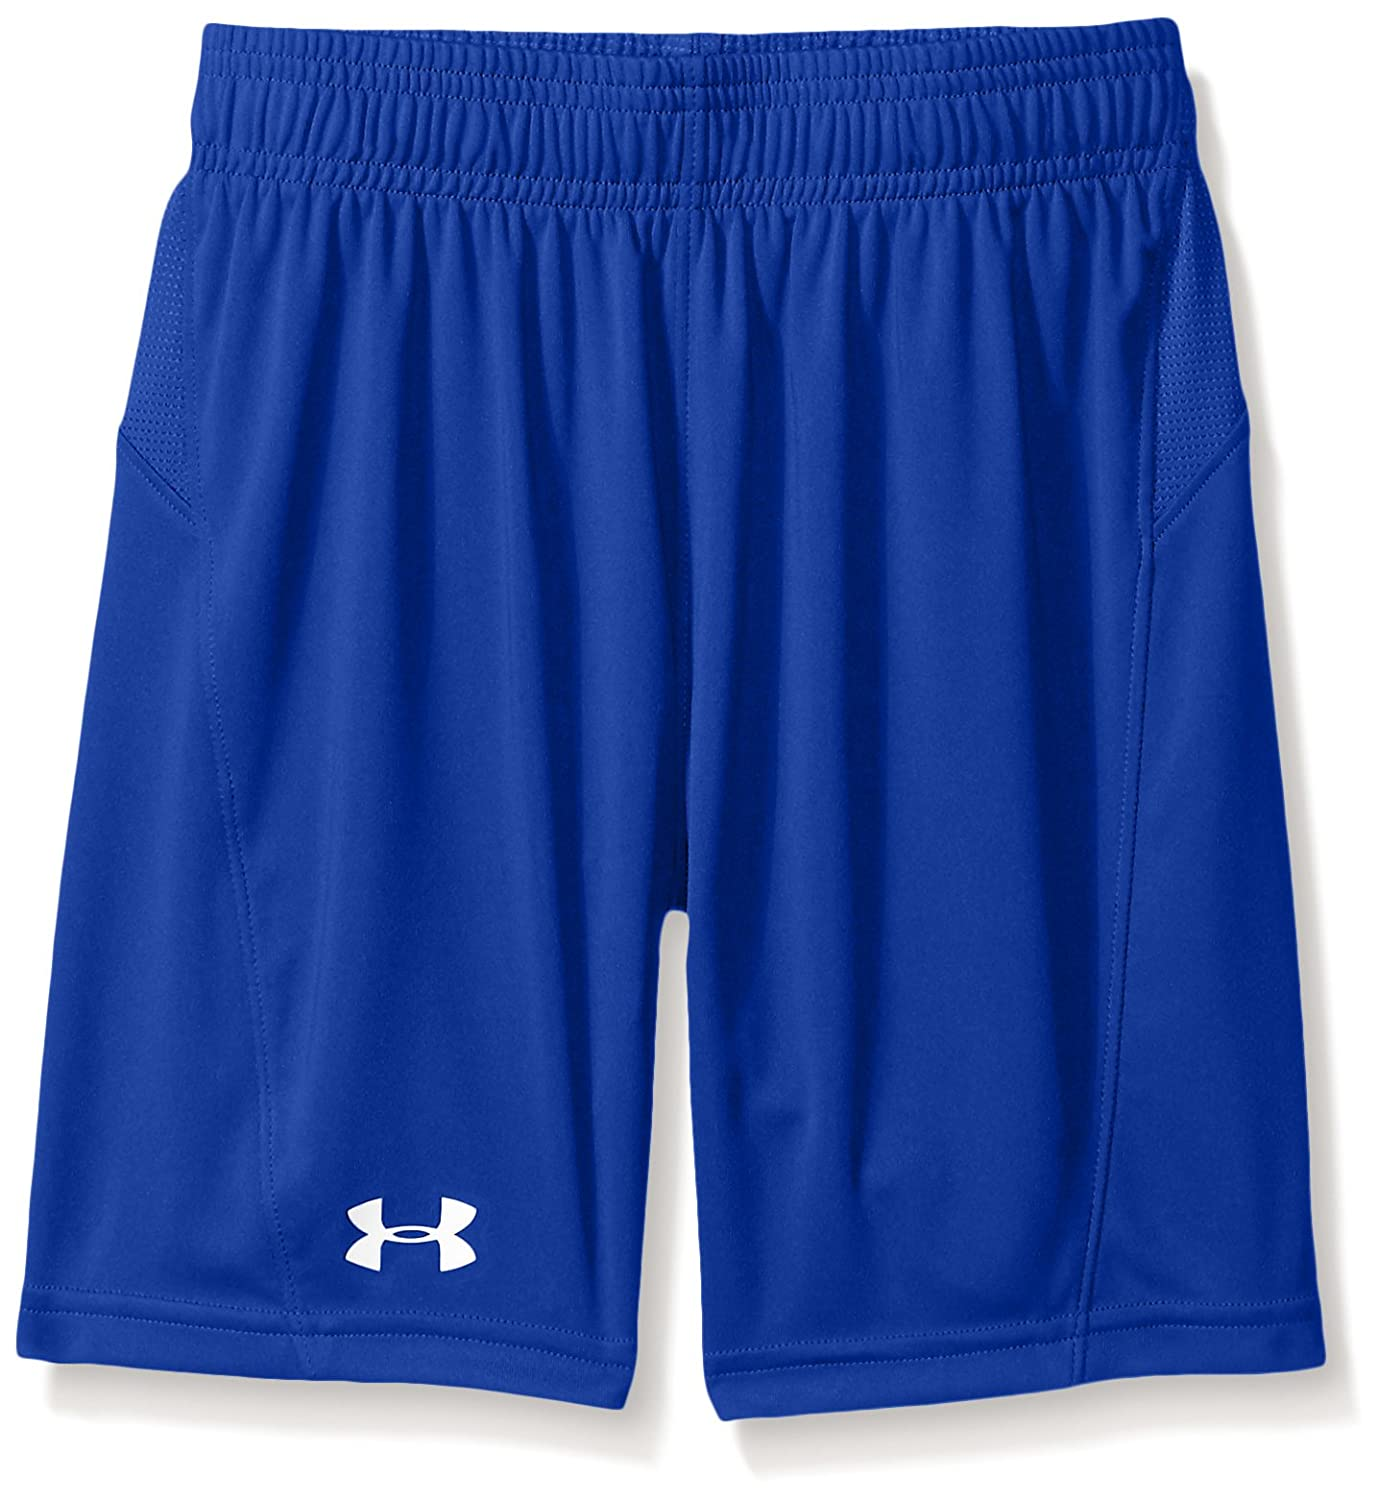 Under Armour Boys' Challenger Knit Shorts Under Armour Apparel 1277782